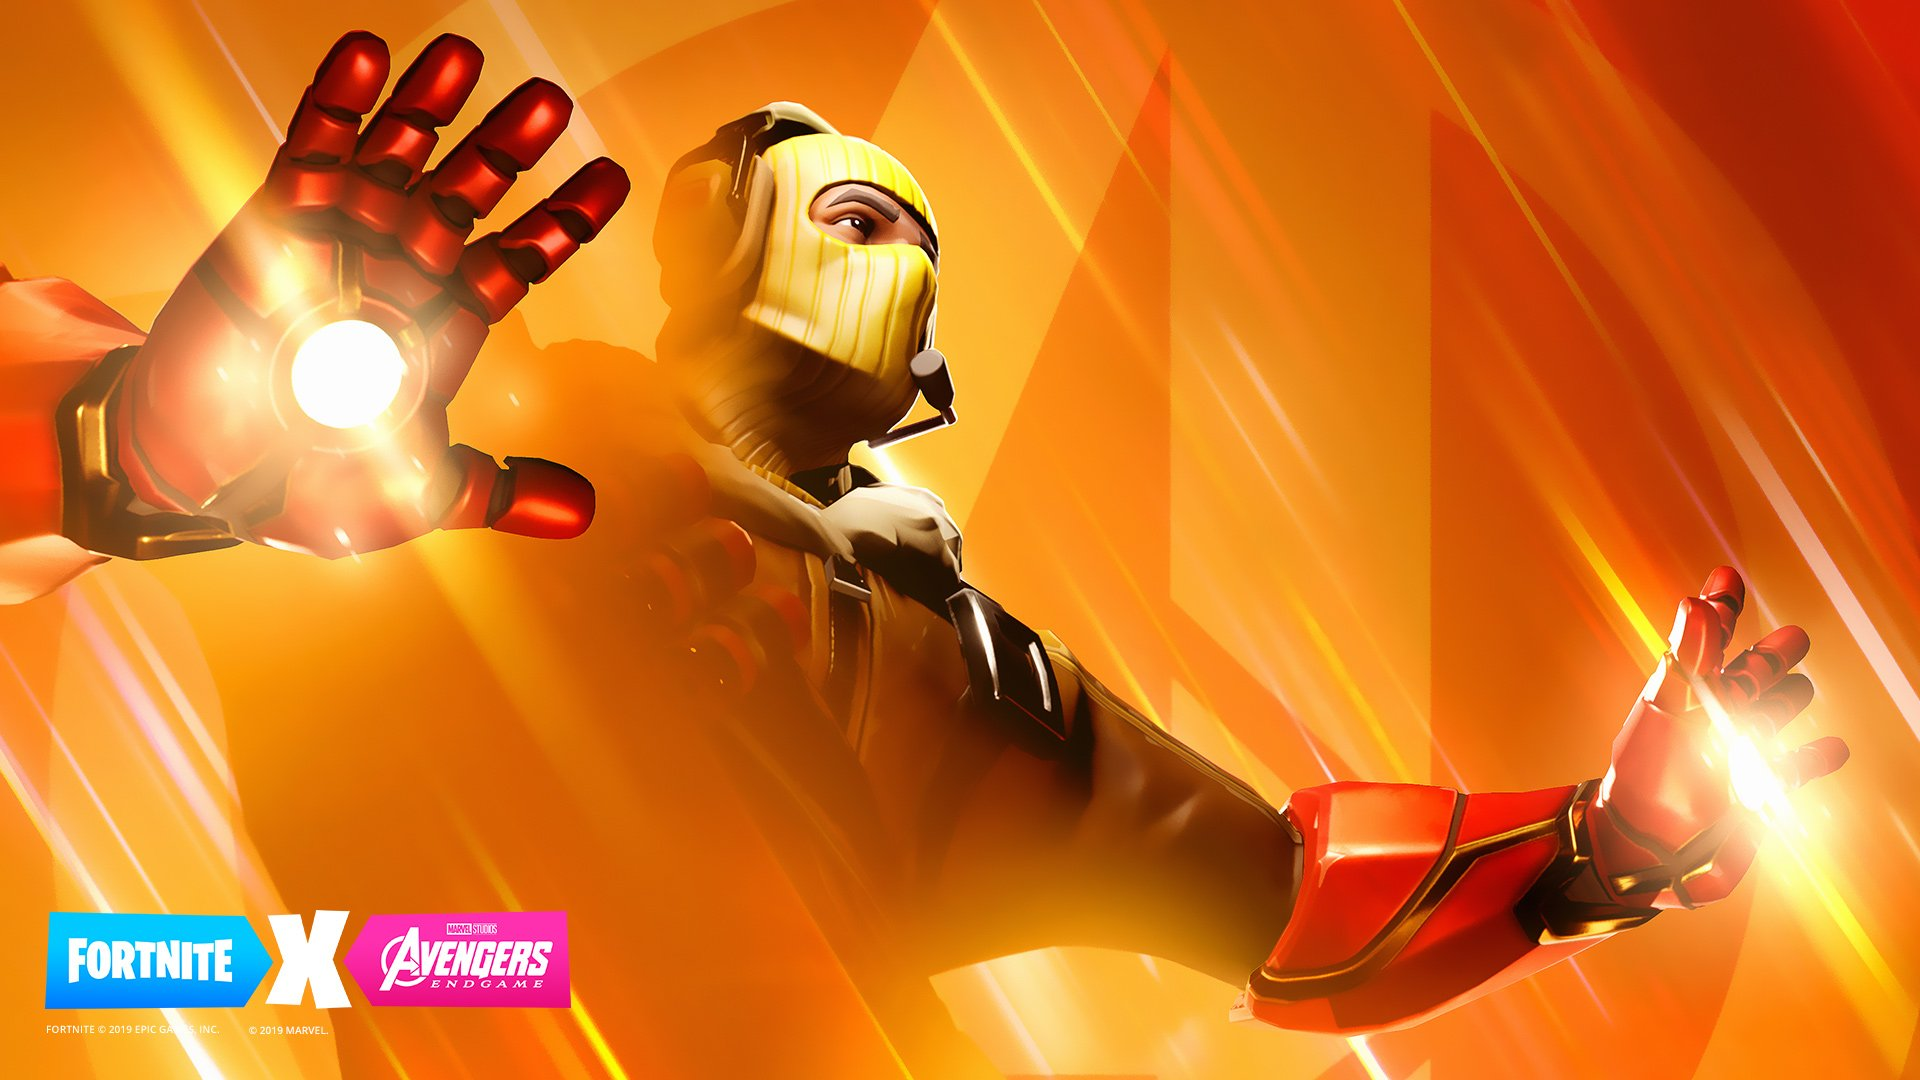 Photo of The Third Teaser about Fortnite X Avengers has been published